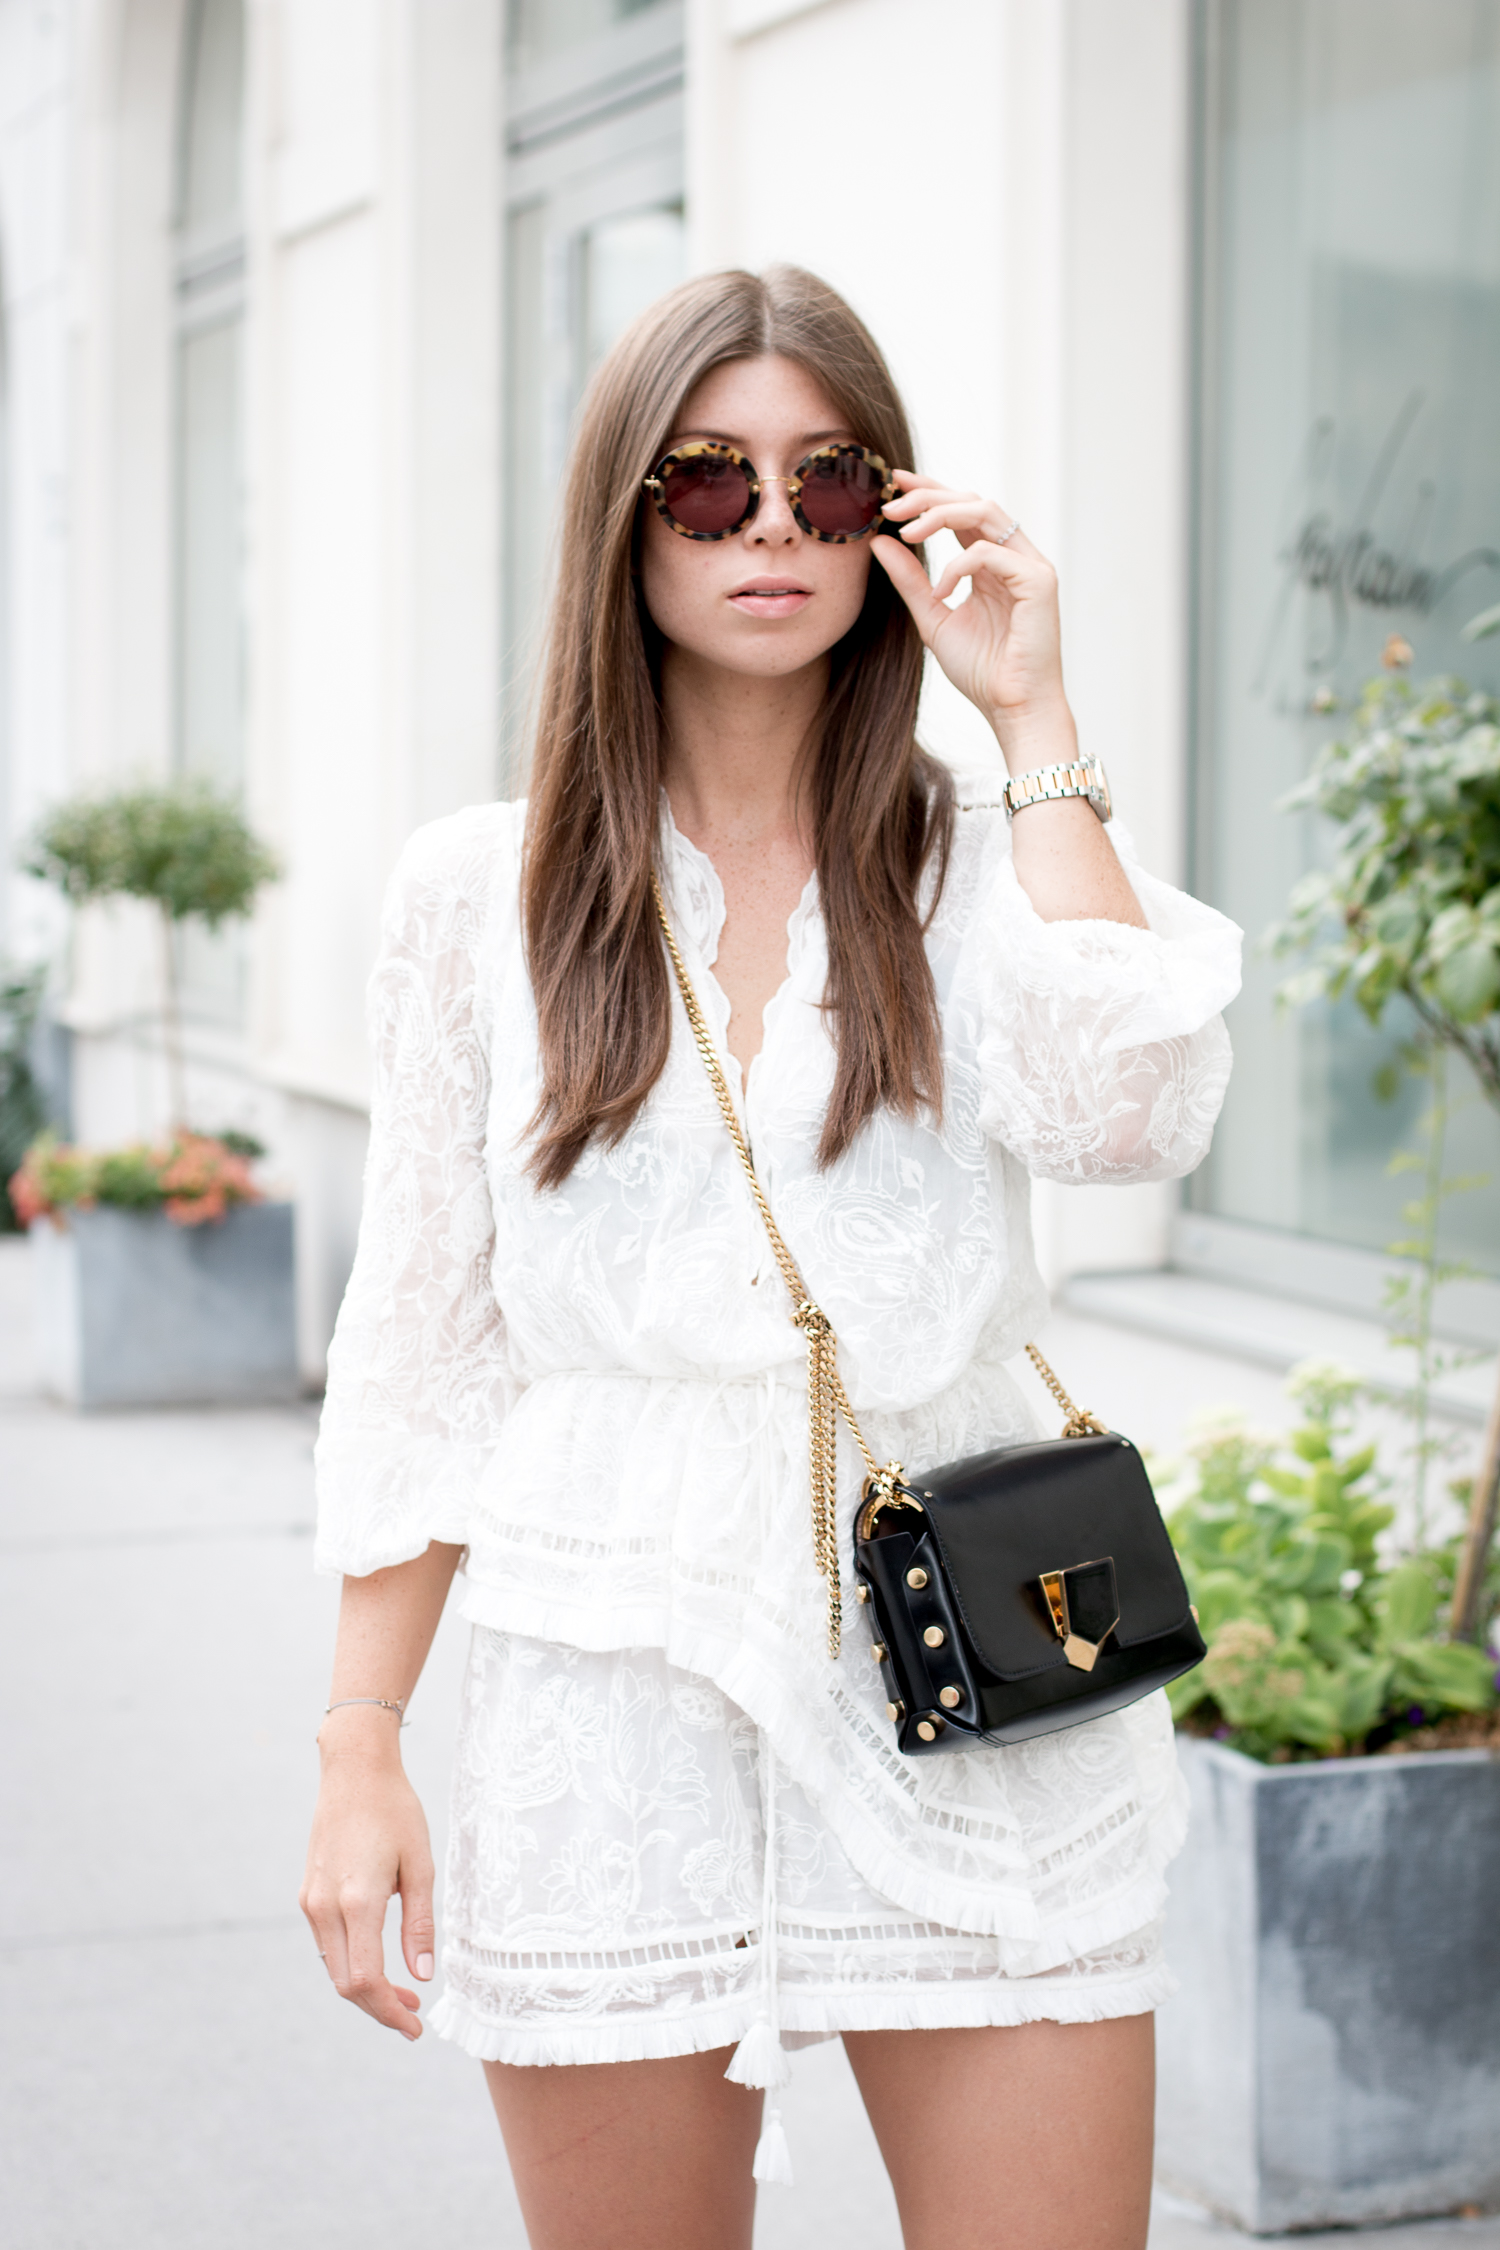 editors-pick-how-to-wear-summer-lace-33